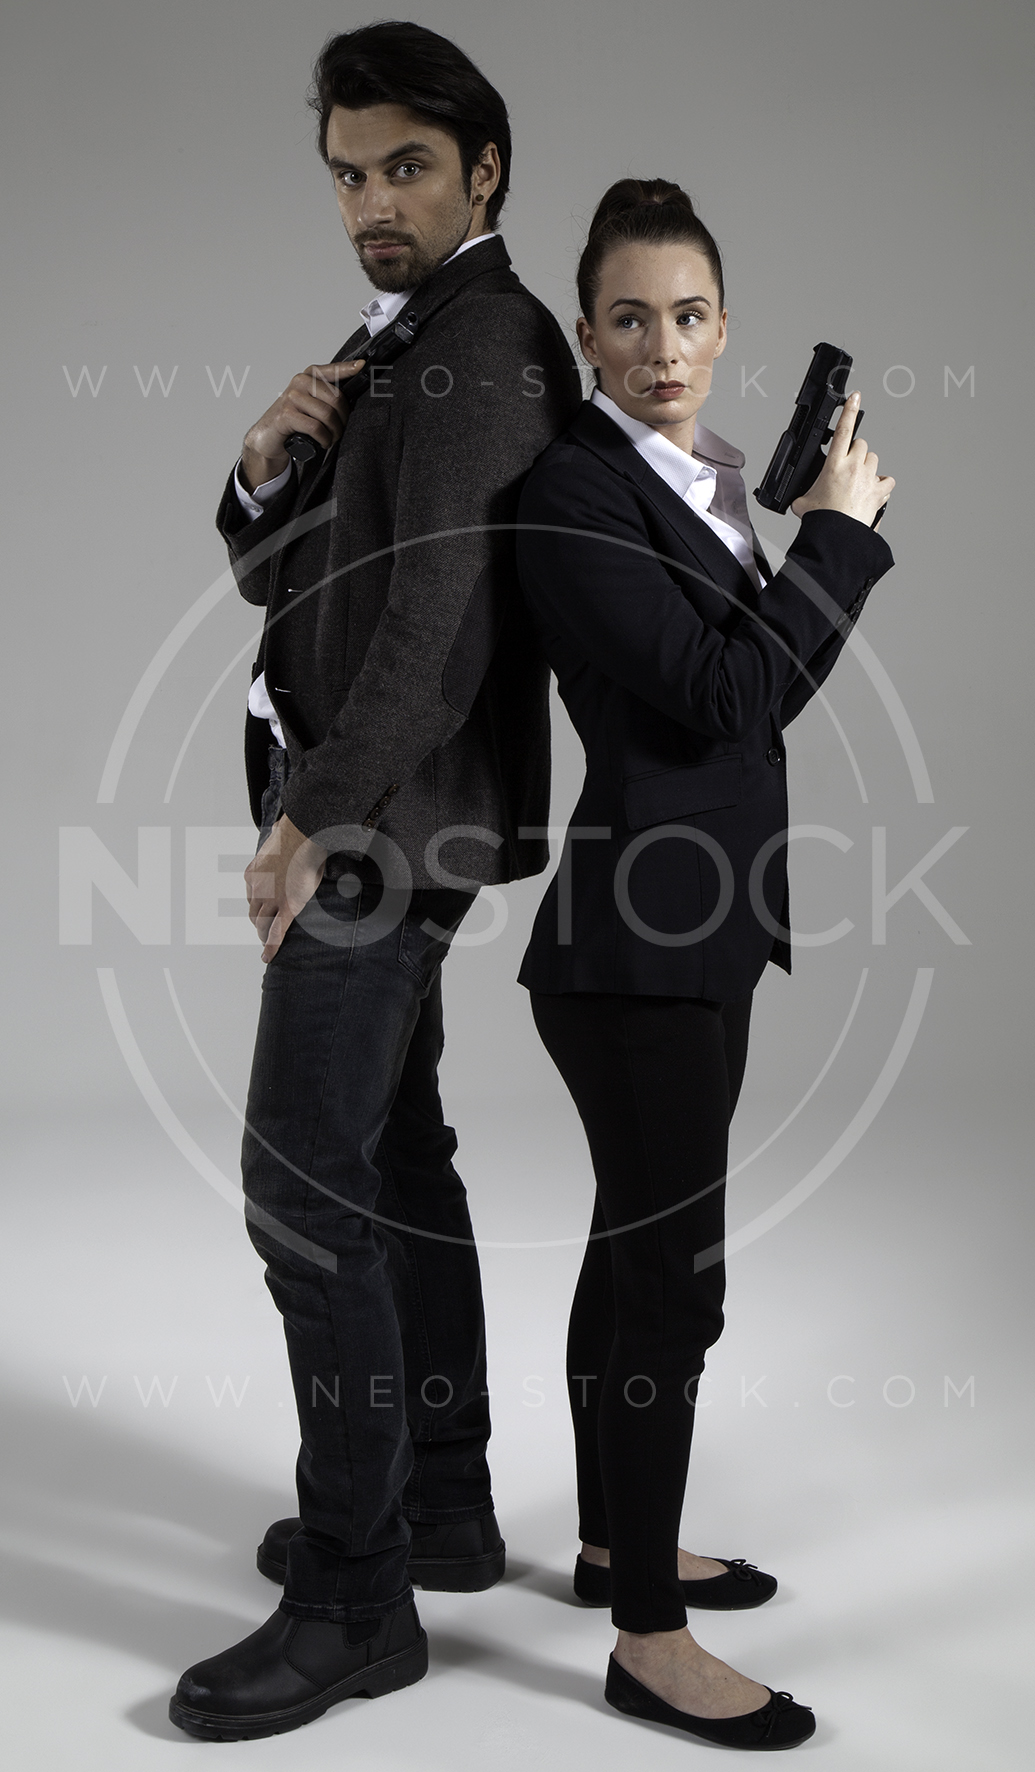 NeoStock - Cop Drama Duo - Stock Photography IV